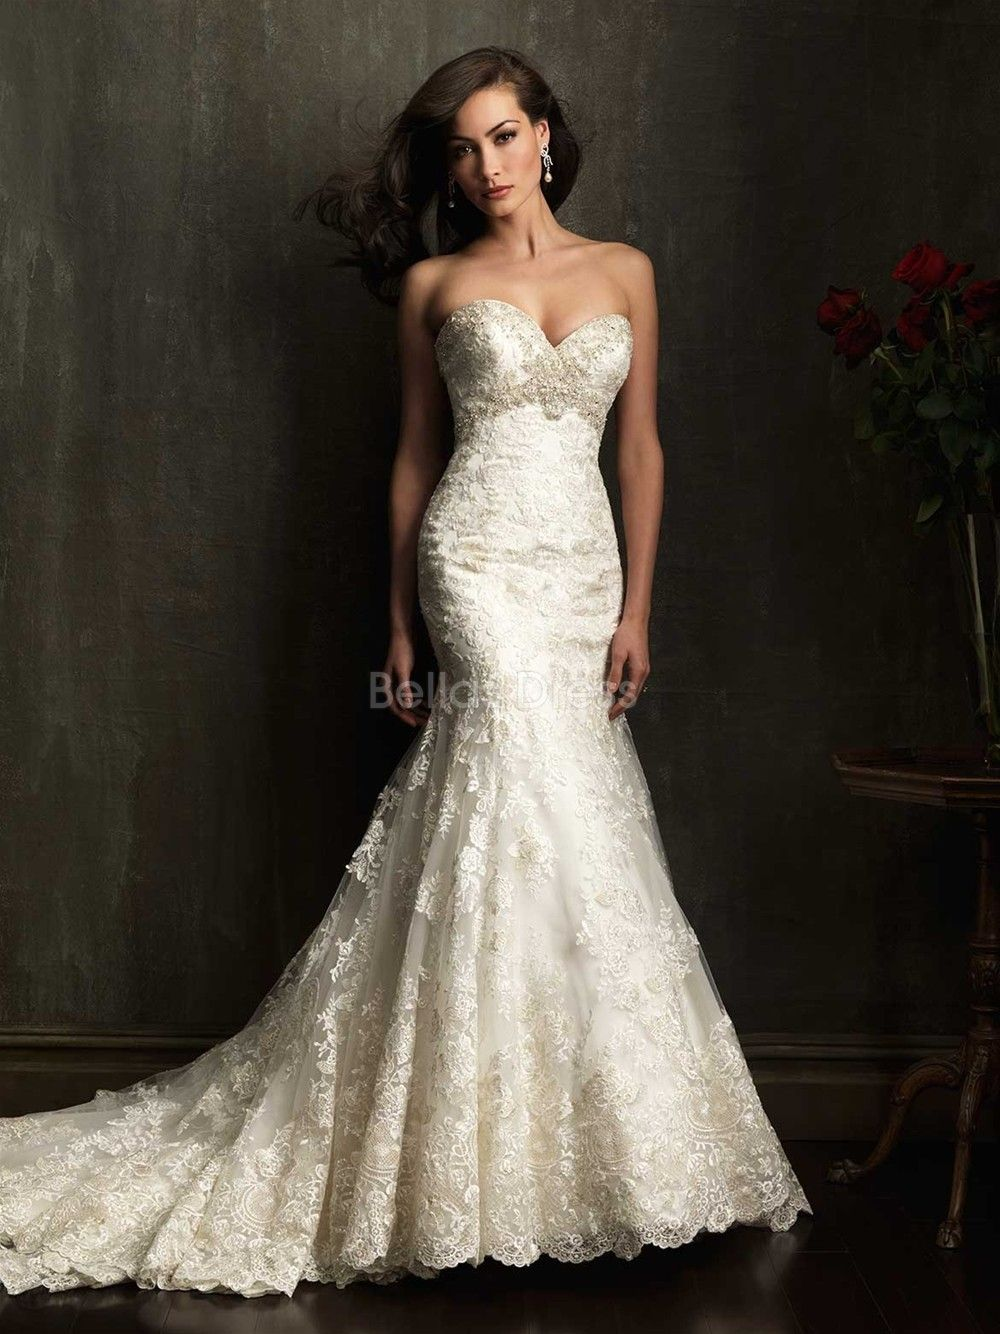 Elegant Mermaid Empire Waist Lace Sweetheart Floor Length Wedding